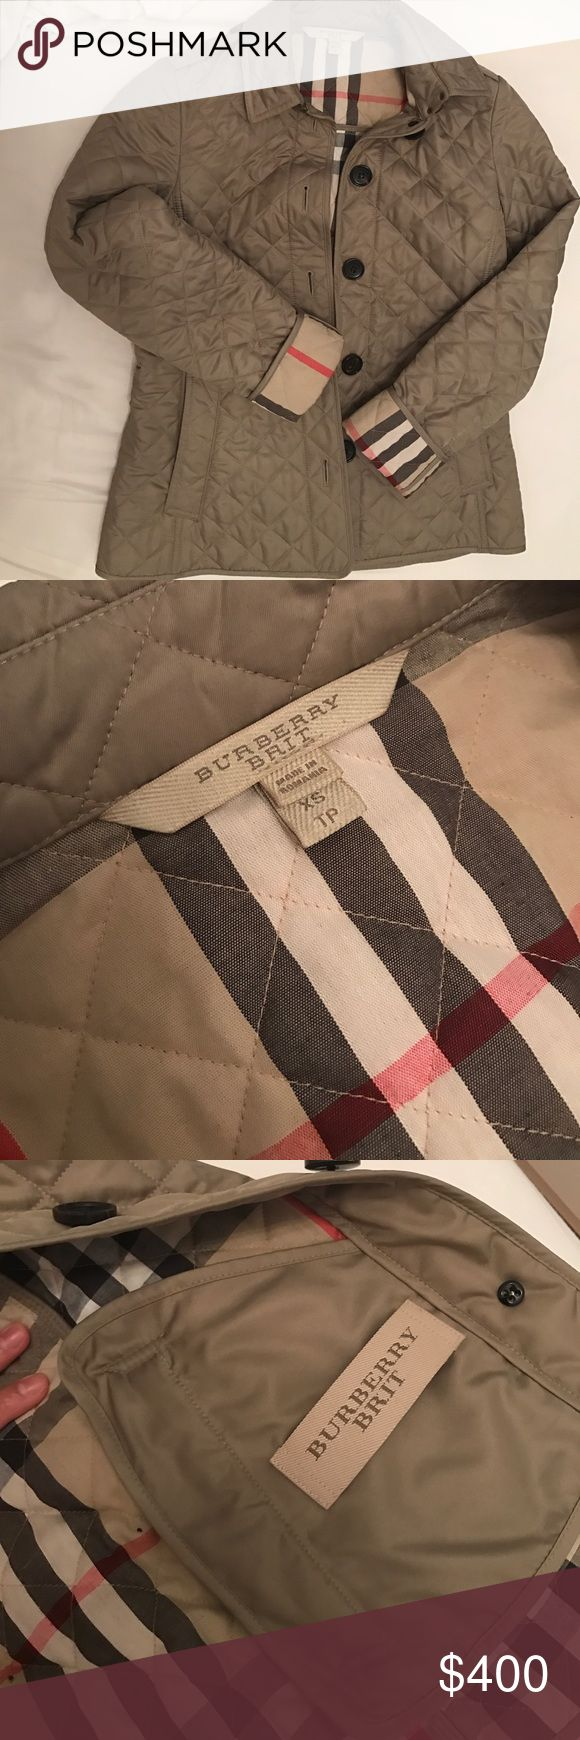 Burberry quilted jacket Burberry Ashurst Quilted Jacket is the perfect jacket for spring and fall. Jacket is still in mint condition as I only wore it a few times. Also fits perfectly on small petite women as I myself is petite. Burberry Jackets & Coats